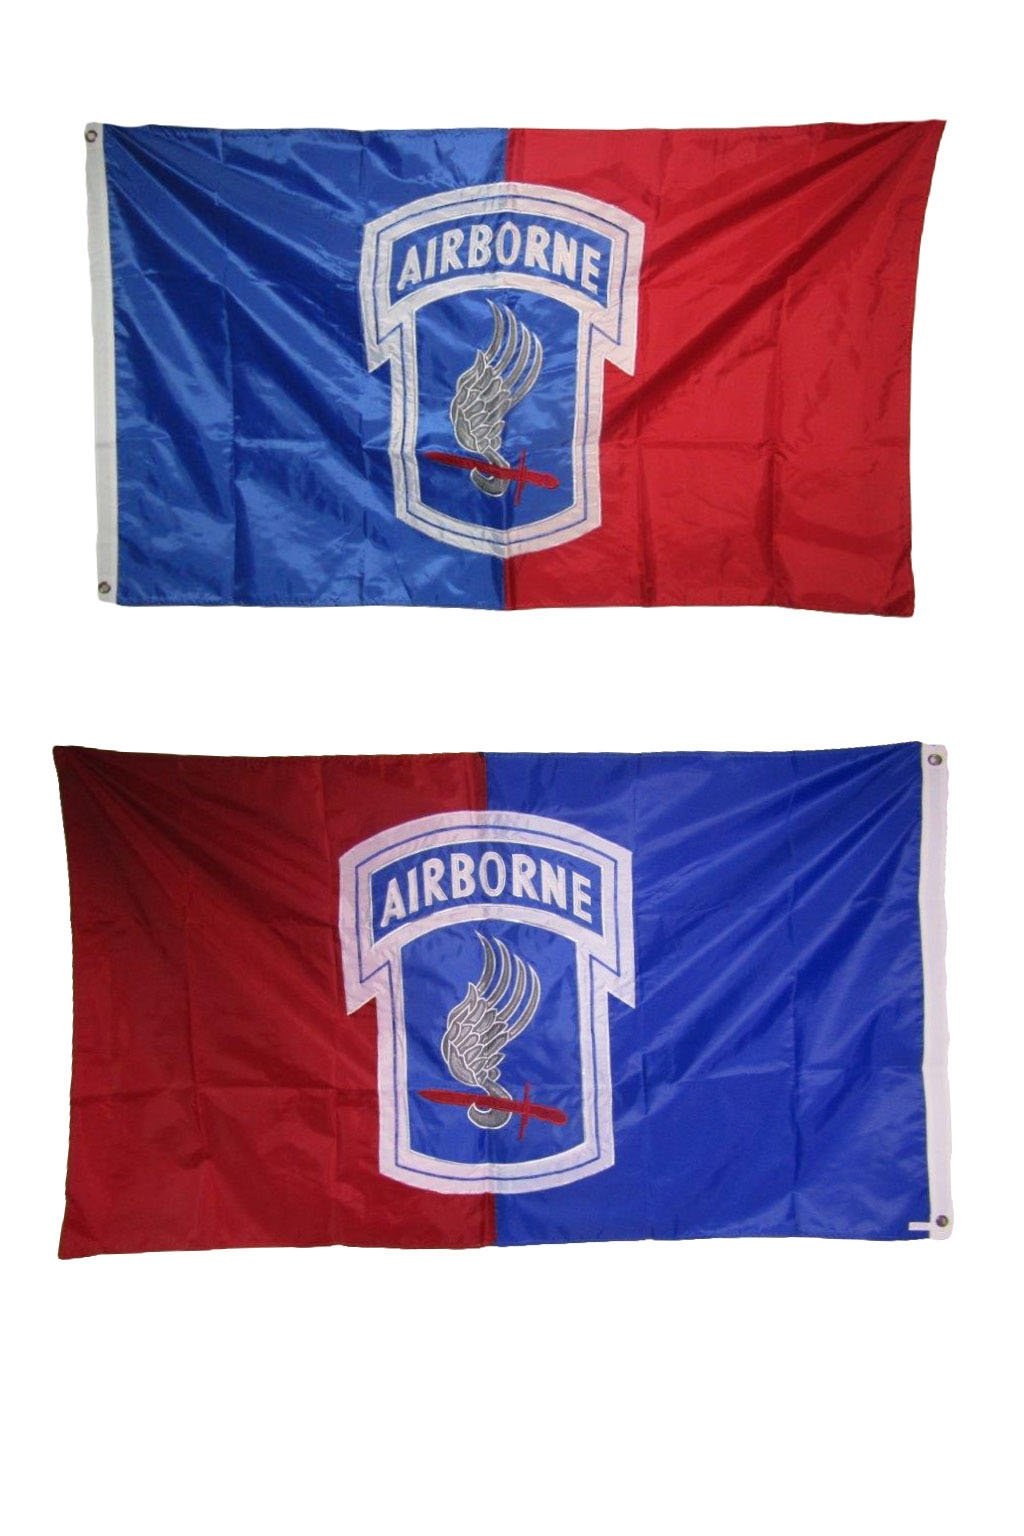 AES 3x5 Embroidered Airborne 173rd Division Double Sided 210D Nylon Flag 3'x5' House Banner Double Stitched Fade Resistant Premium Quality